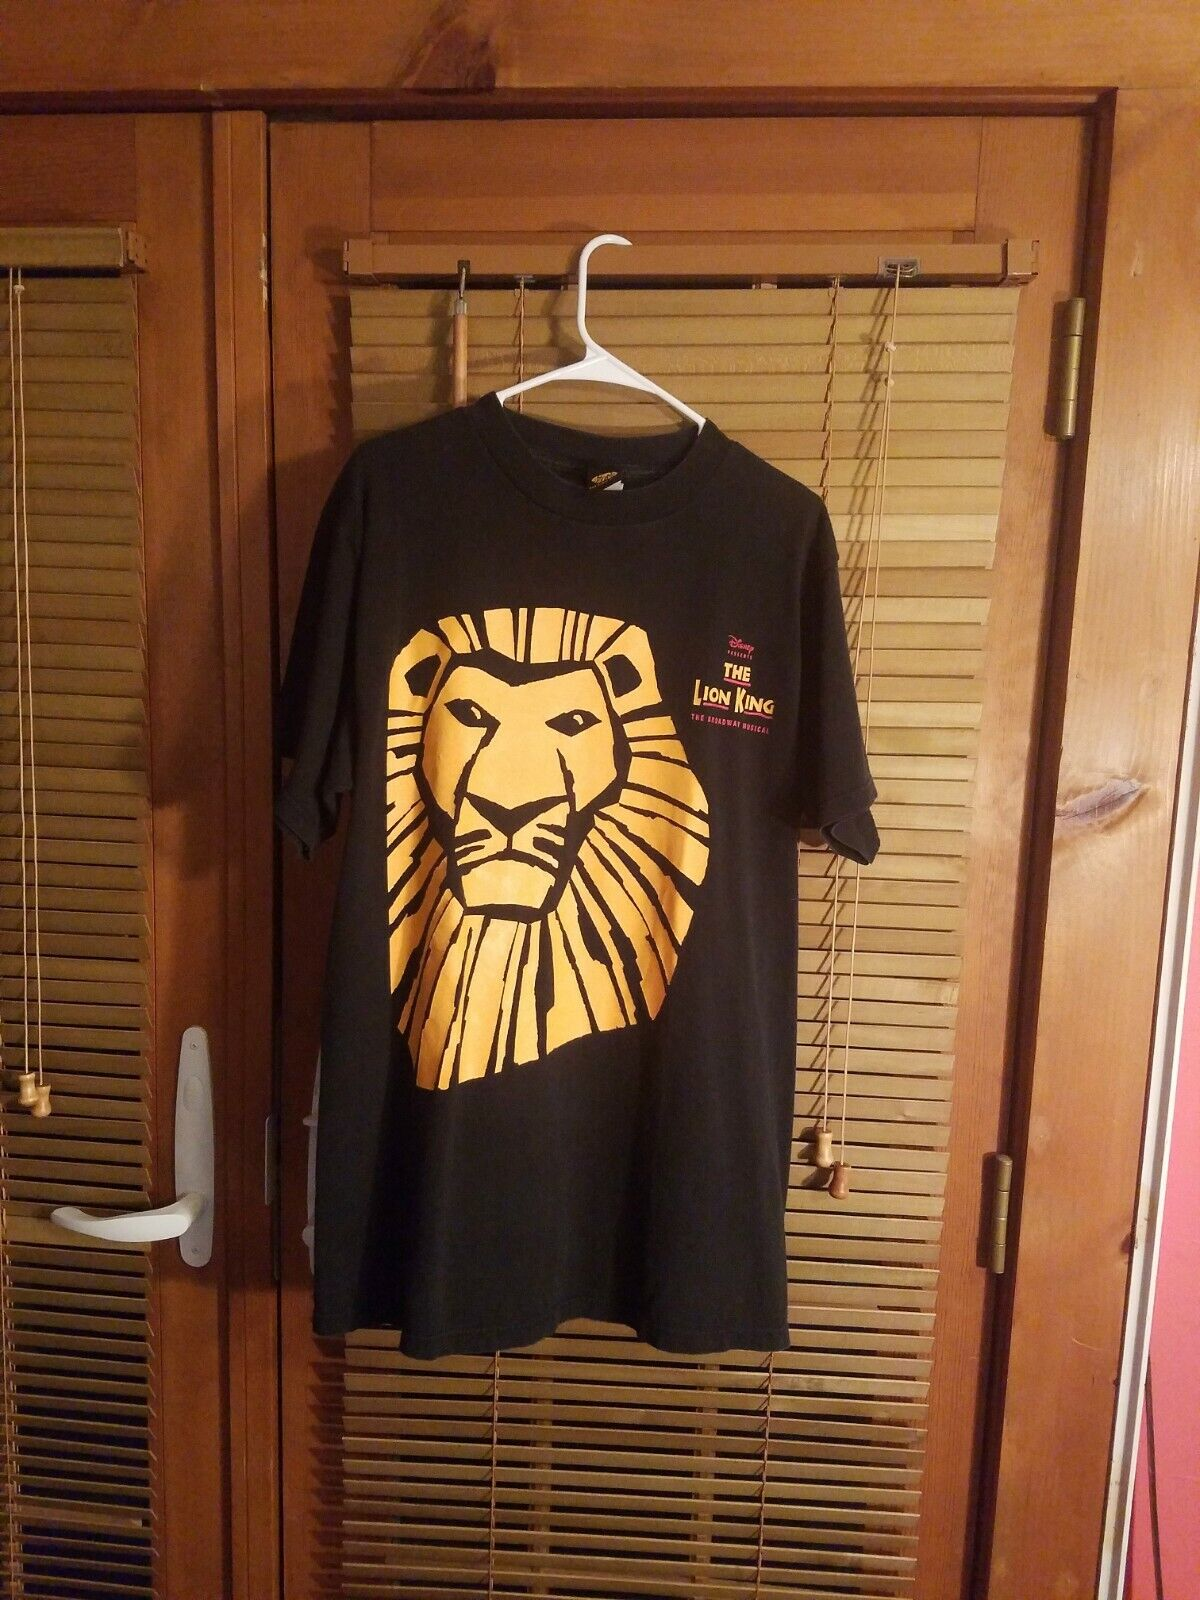 THE LION KING Disney Musical Vintage T-Shirt 90s made in usa big head promo L XL